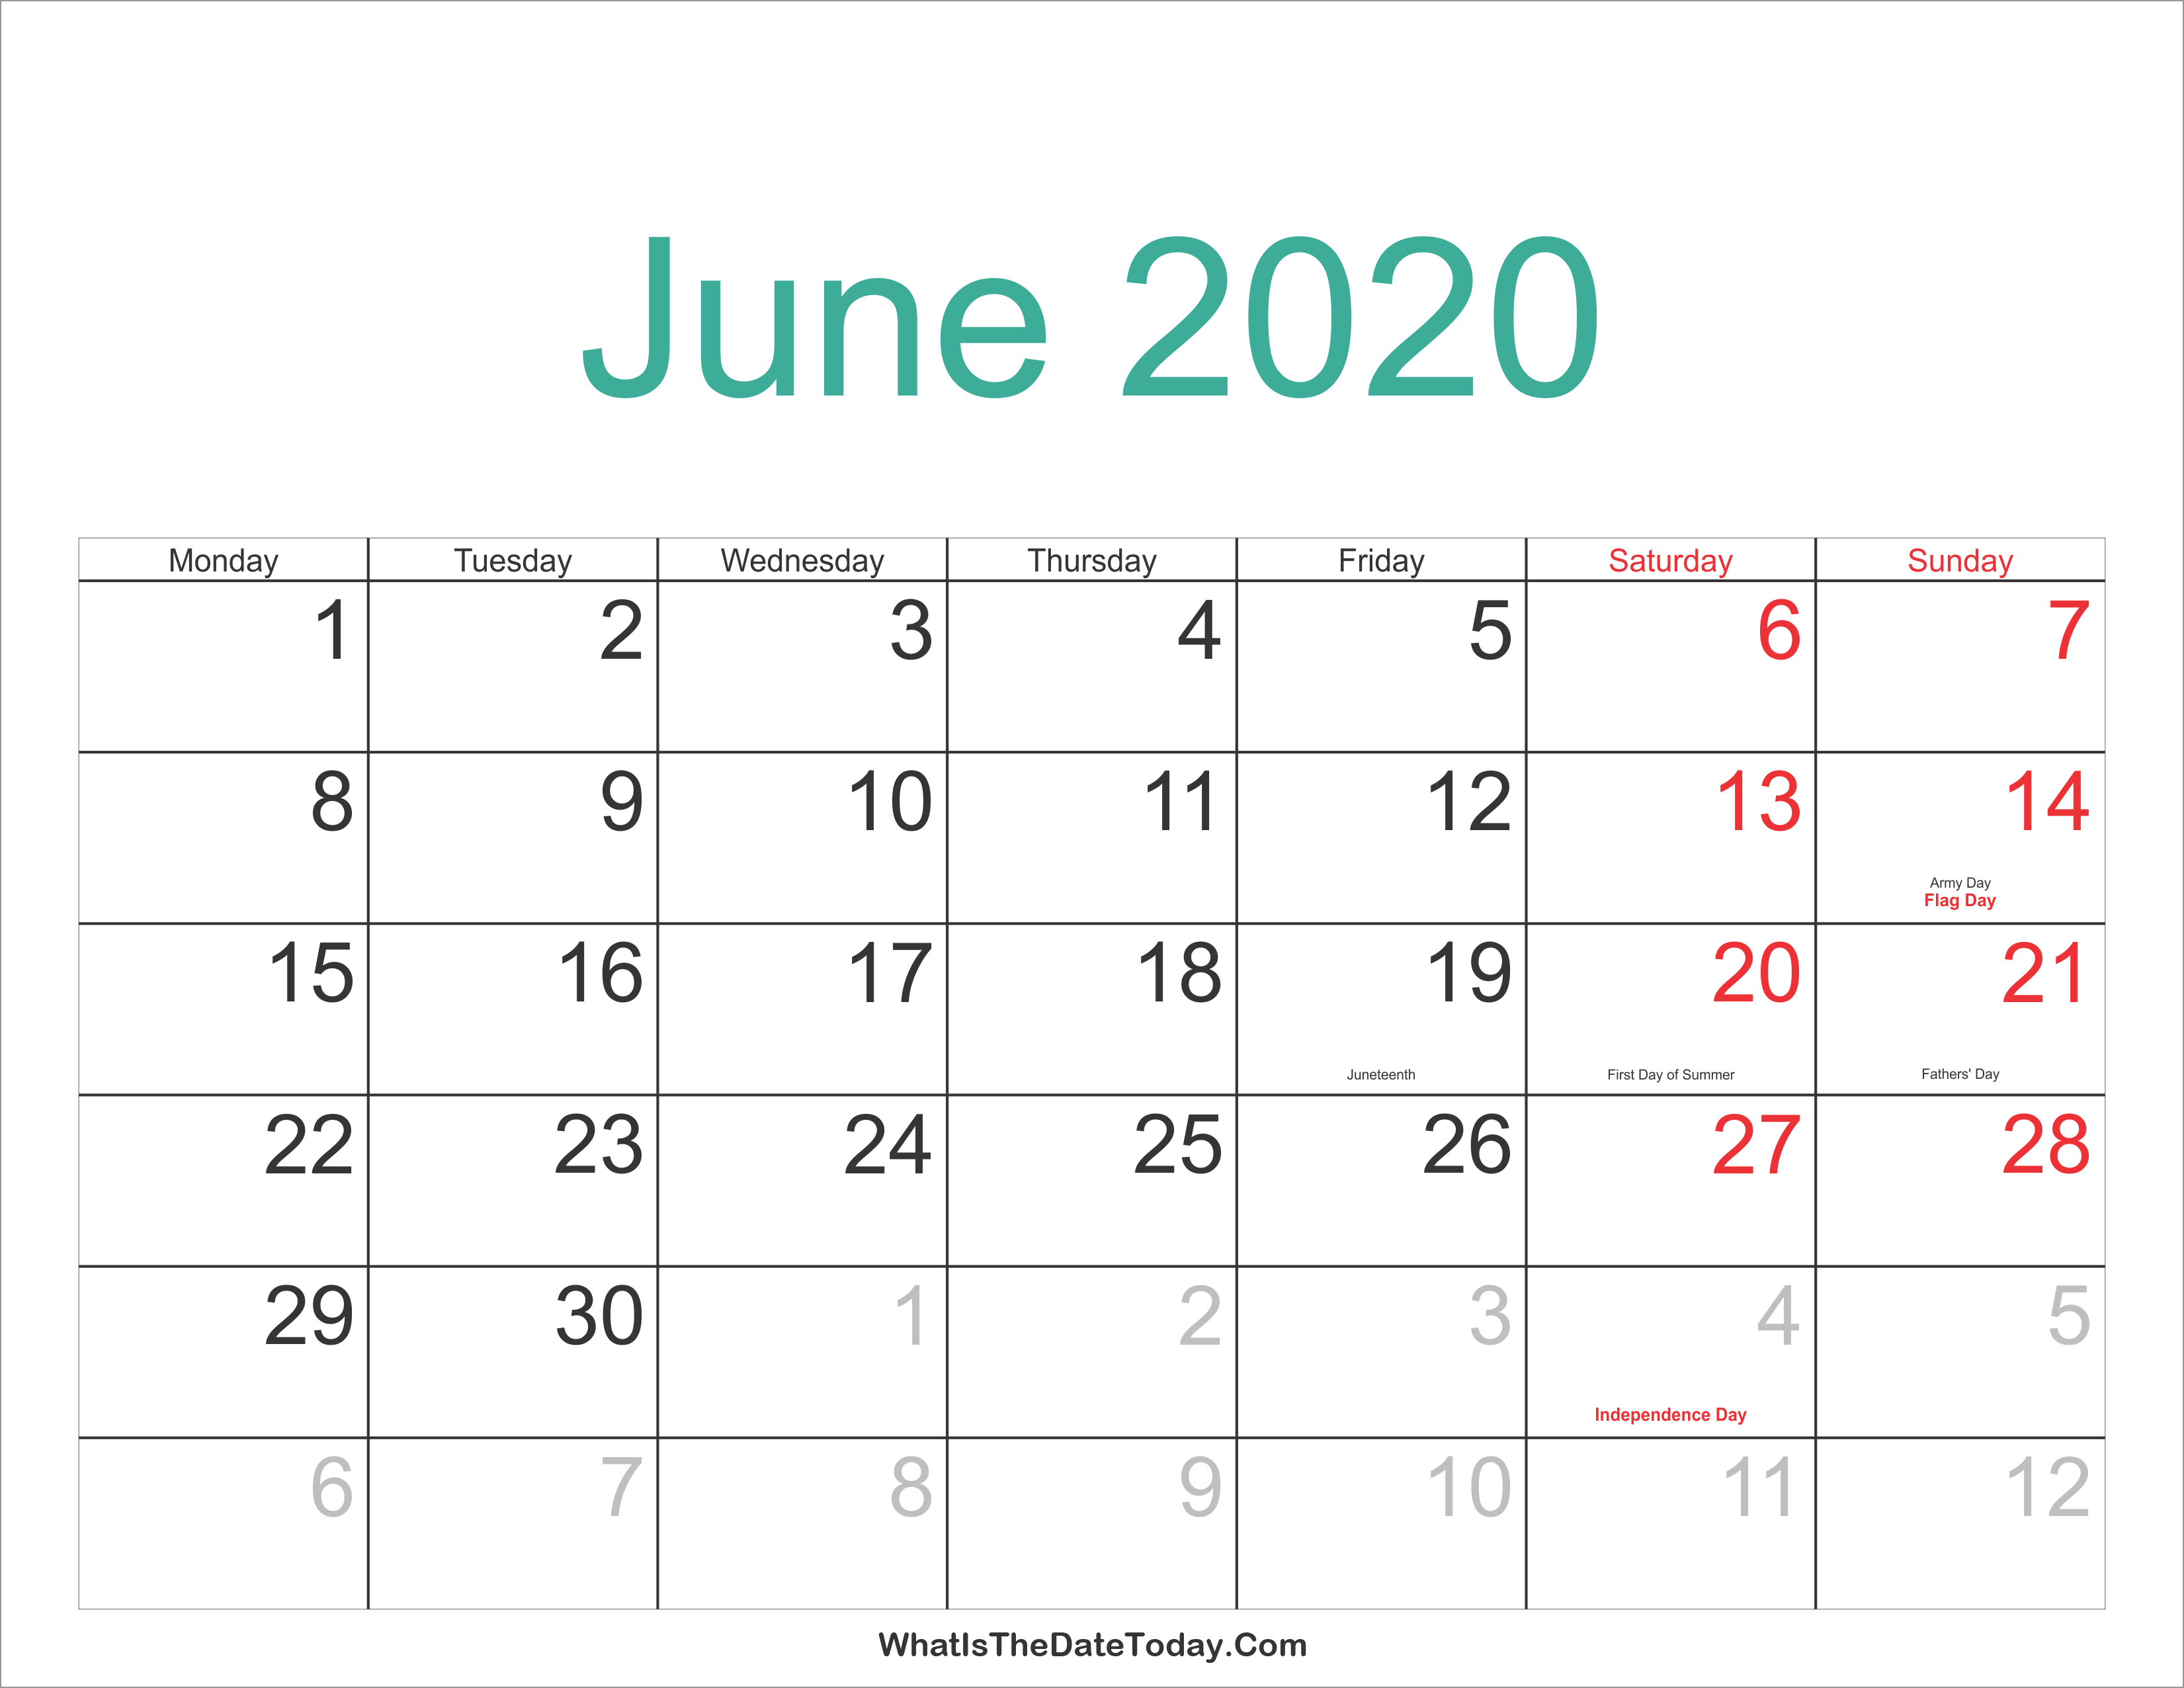 2020 Summer Calendar June 2020 Calendar Printable with Holidays | Whatisthedatetoday.Com